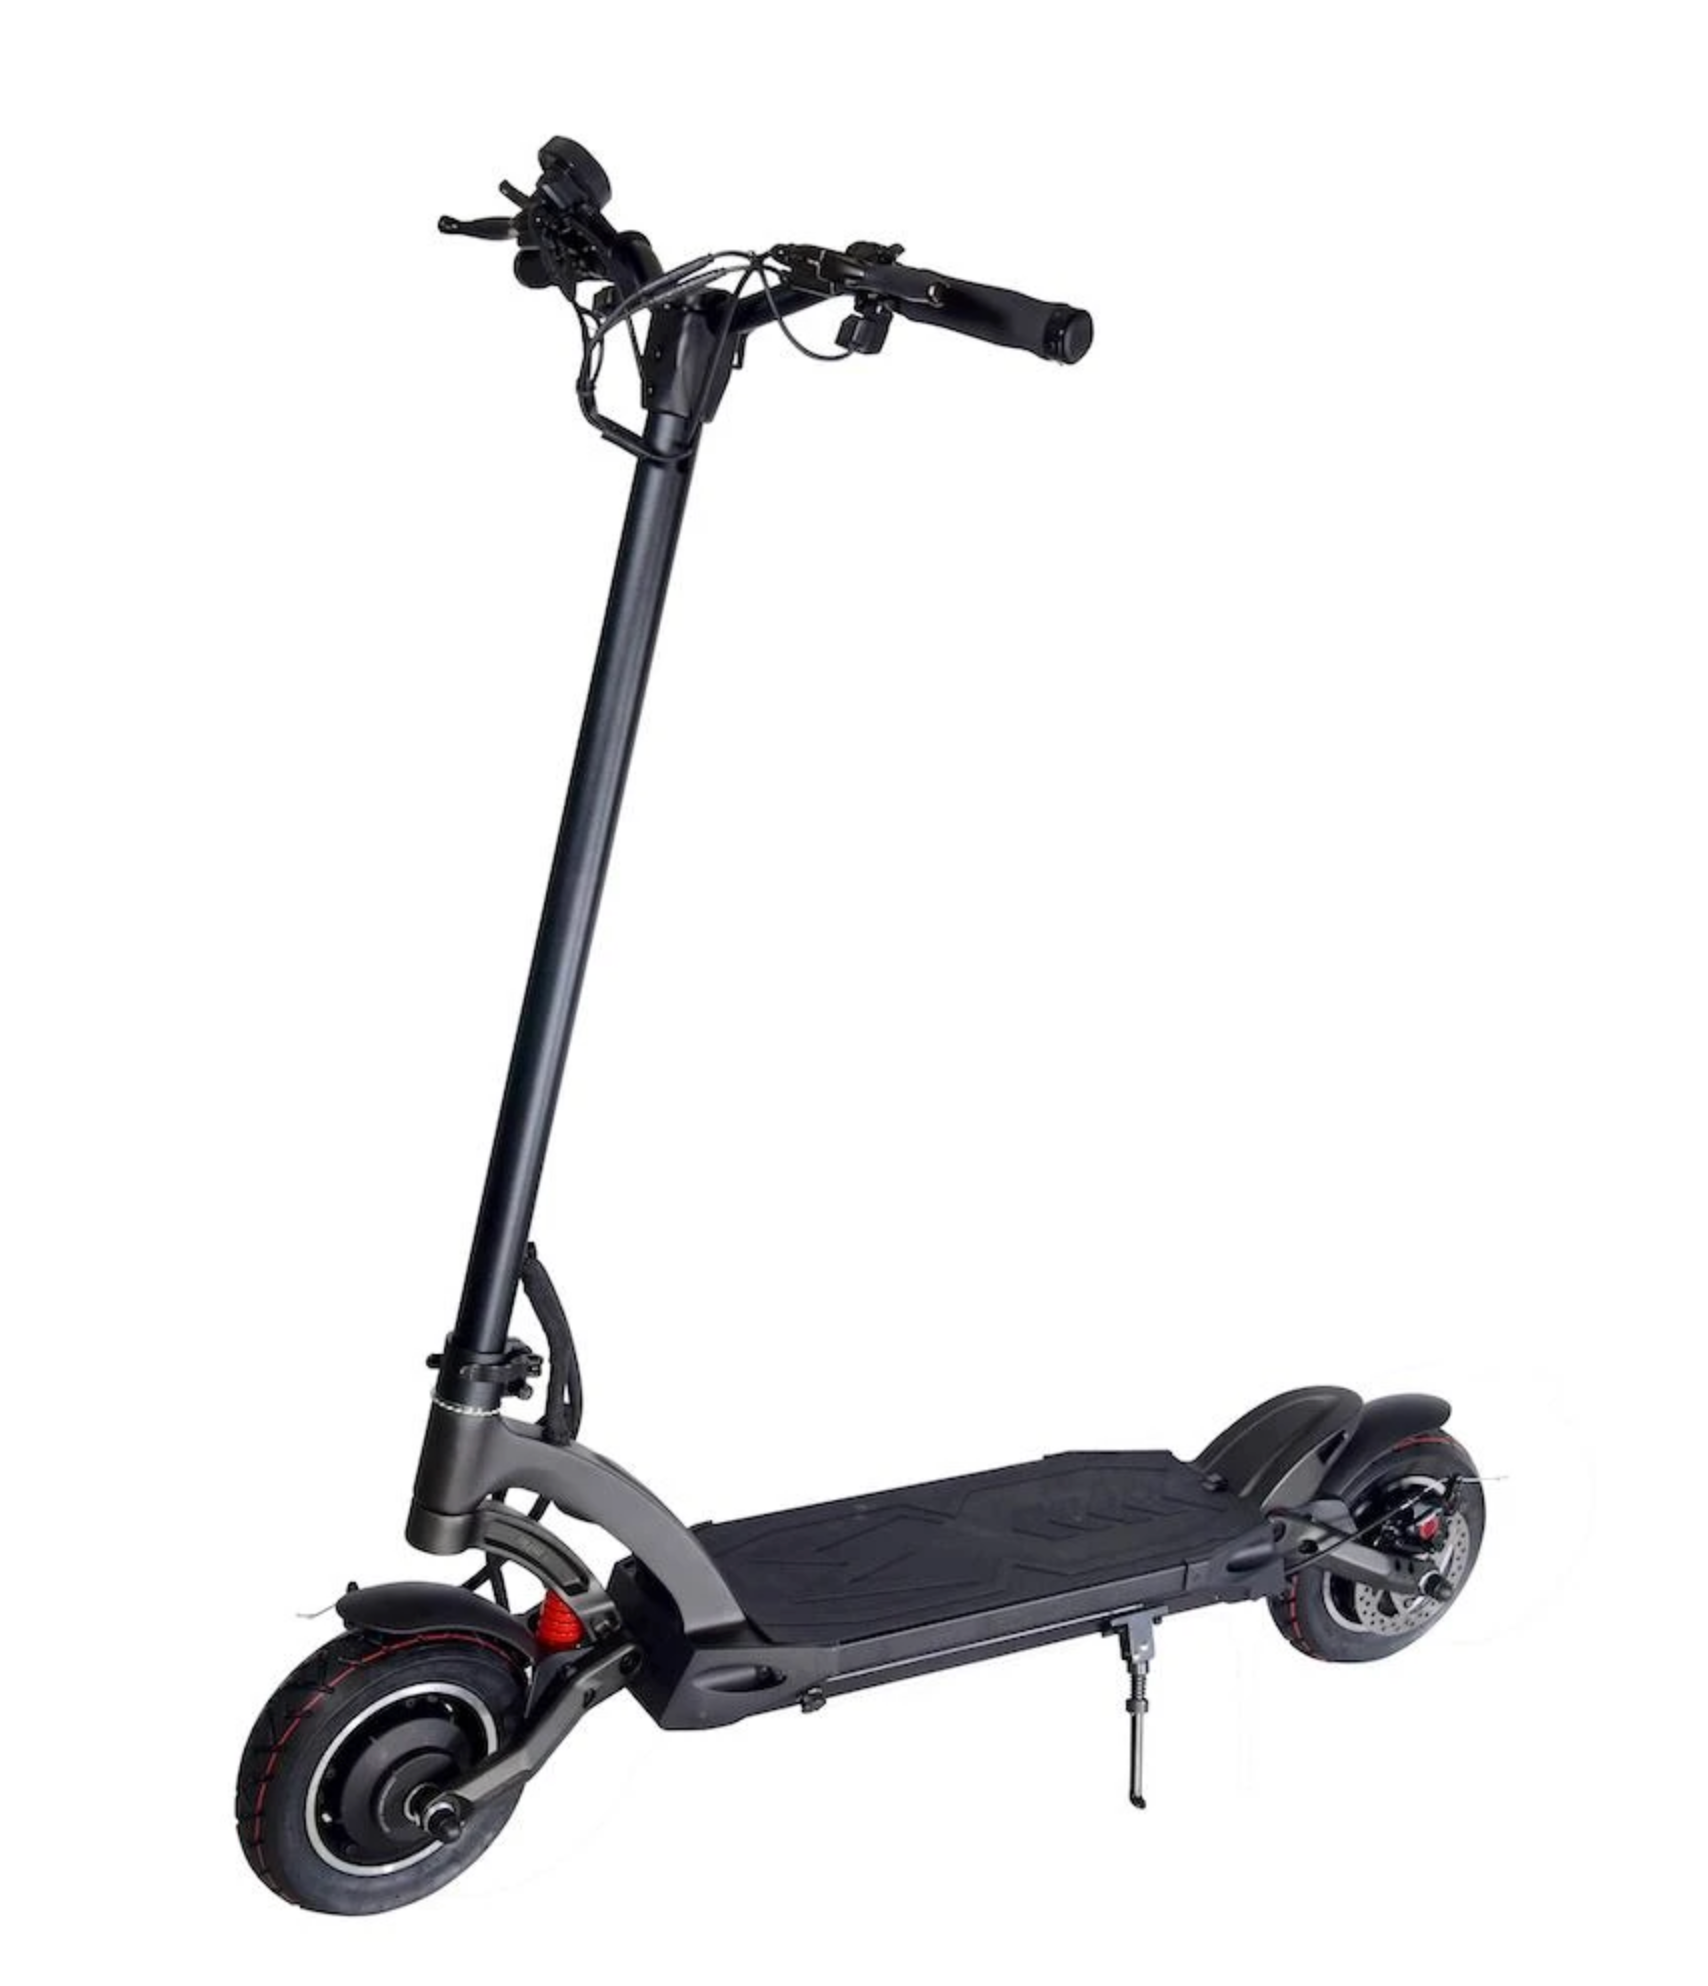 Kaabo Mantis Pro Electric Scooter Main Image